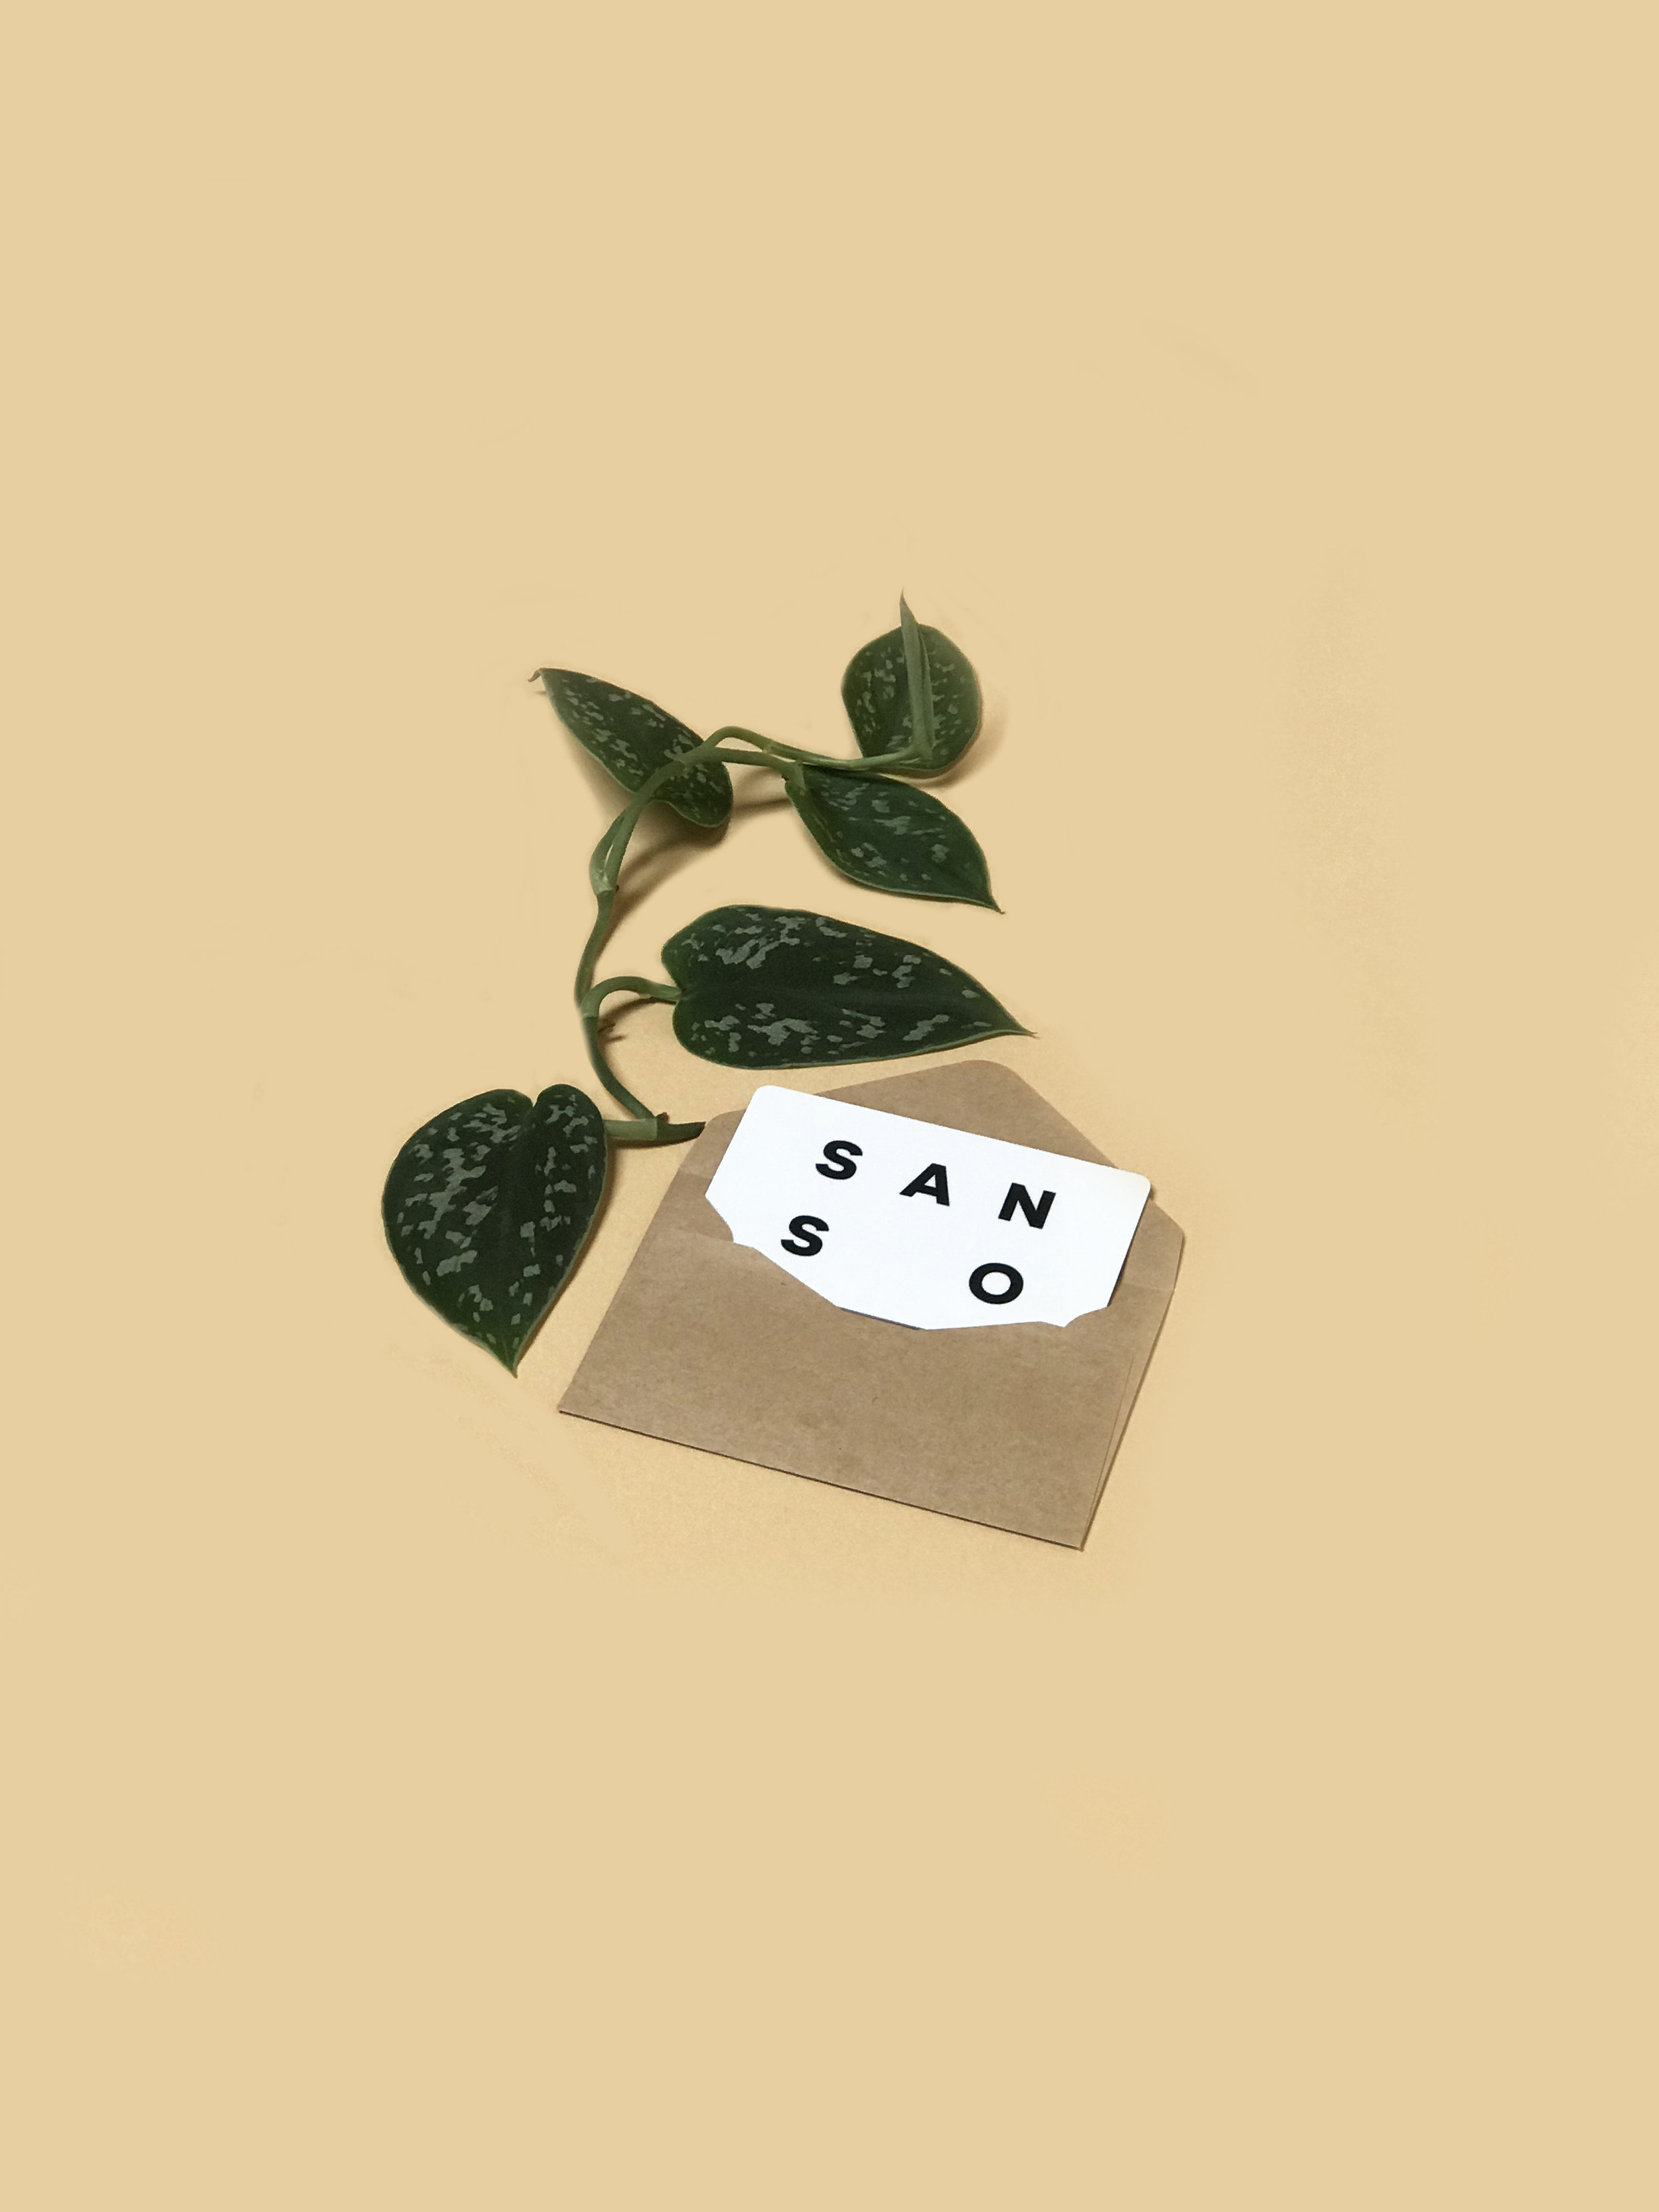 the sanso gift card - For all your gifting needs.